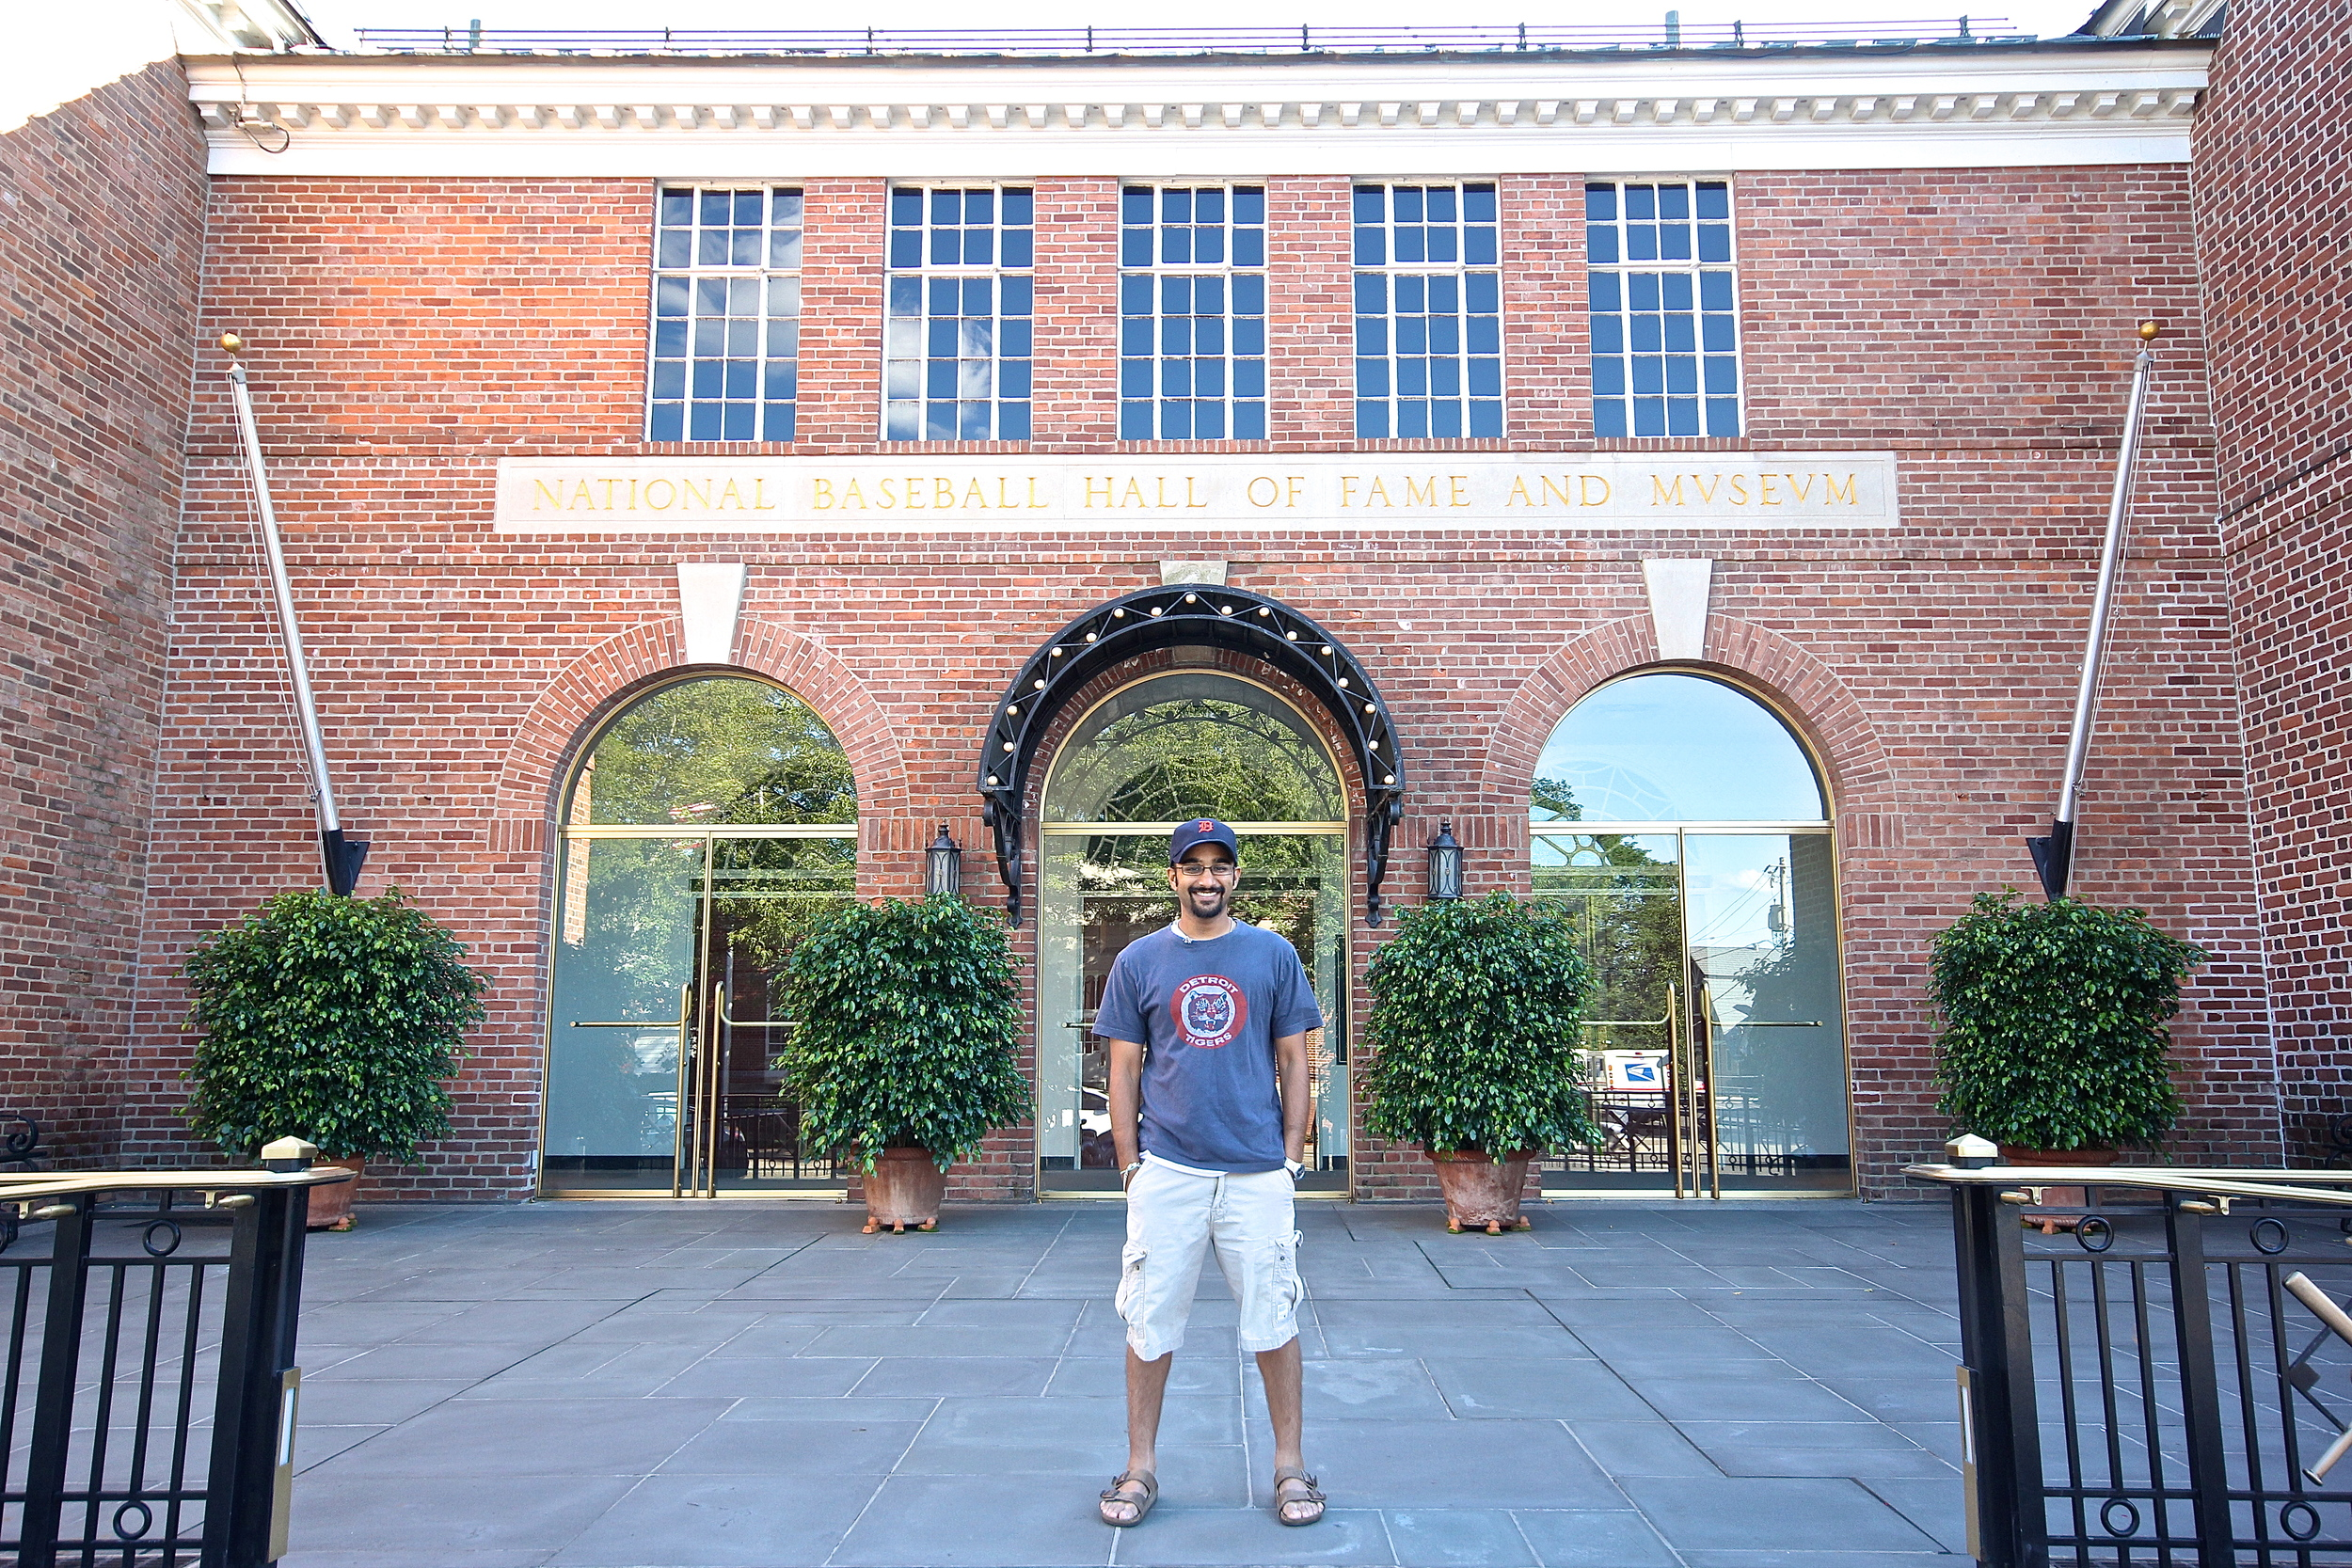 Me in front of the Hall of Fame